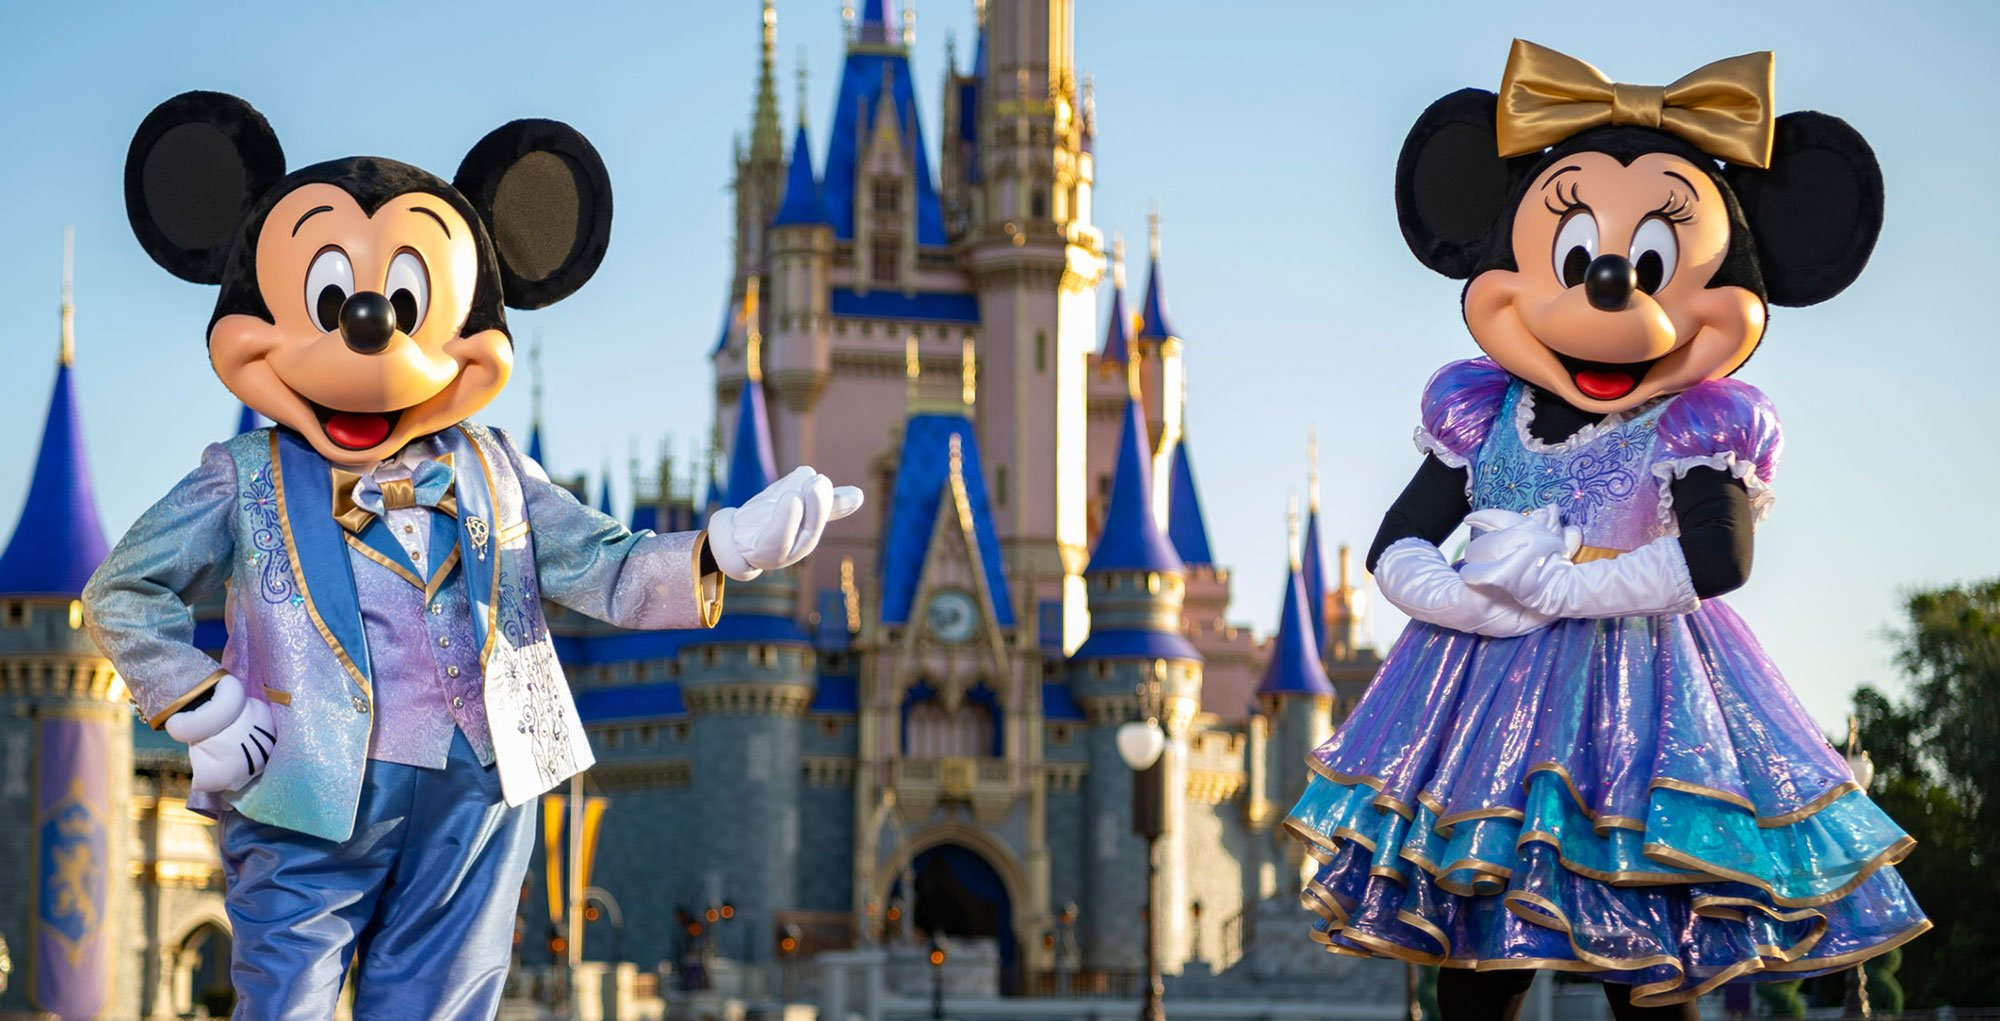 Mickey and Minnie in their new 50th anniversary outfits